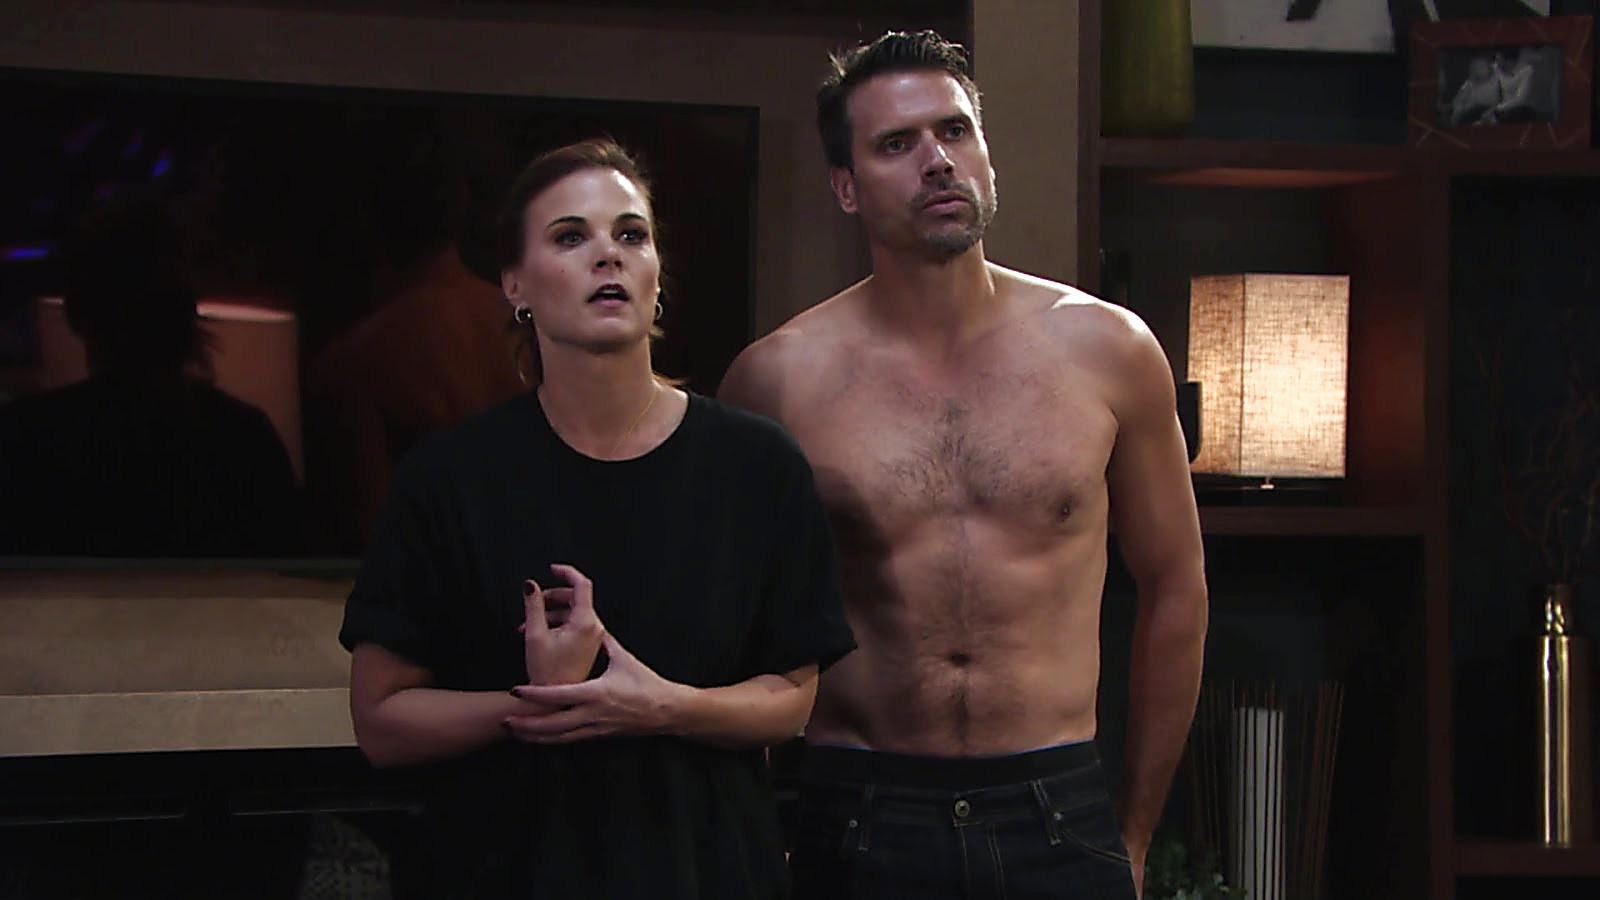 Joshua Morrow sexy shirtless scene November 27, 2018, 3pm